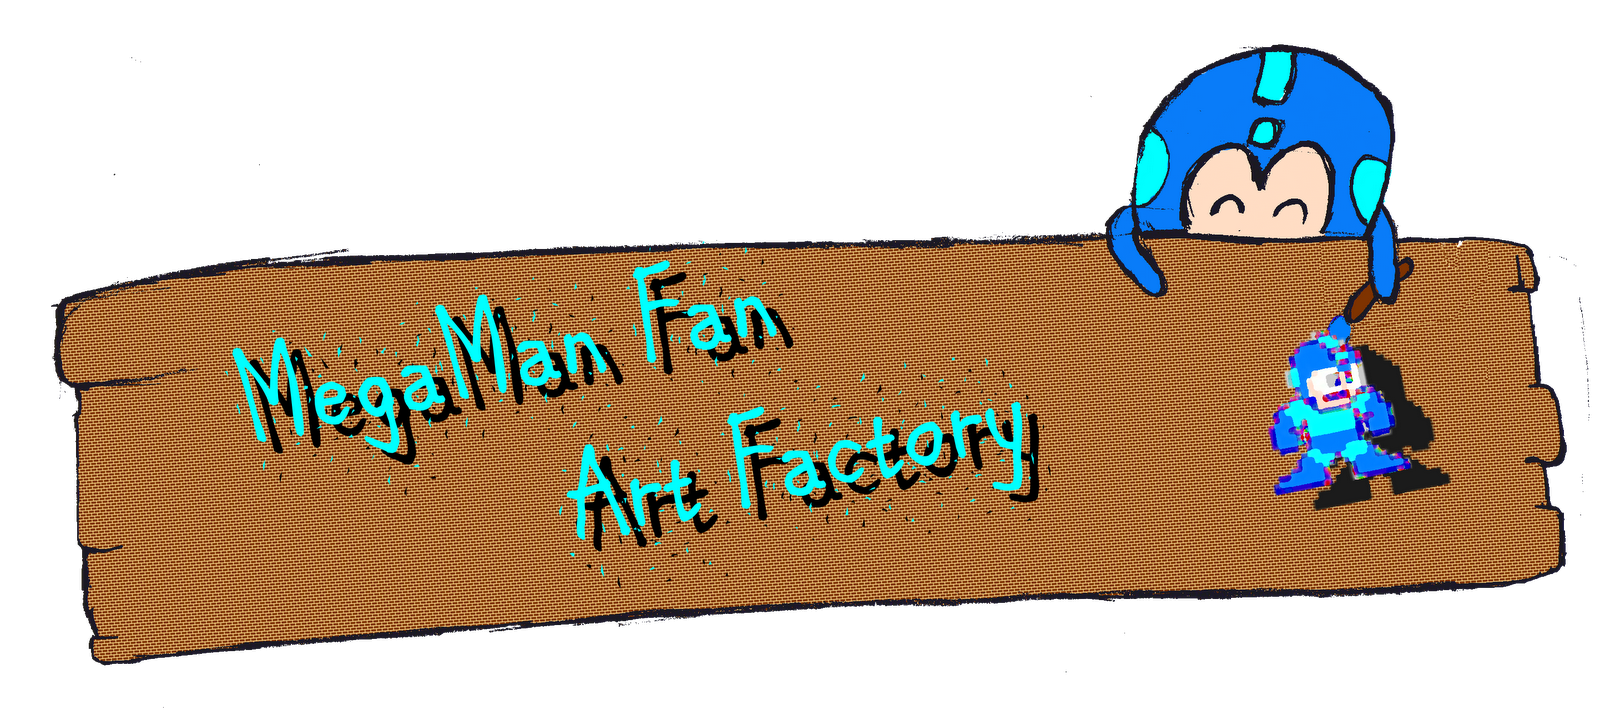 Megaman Fan Art Factory!